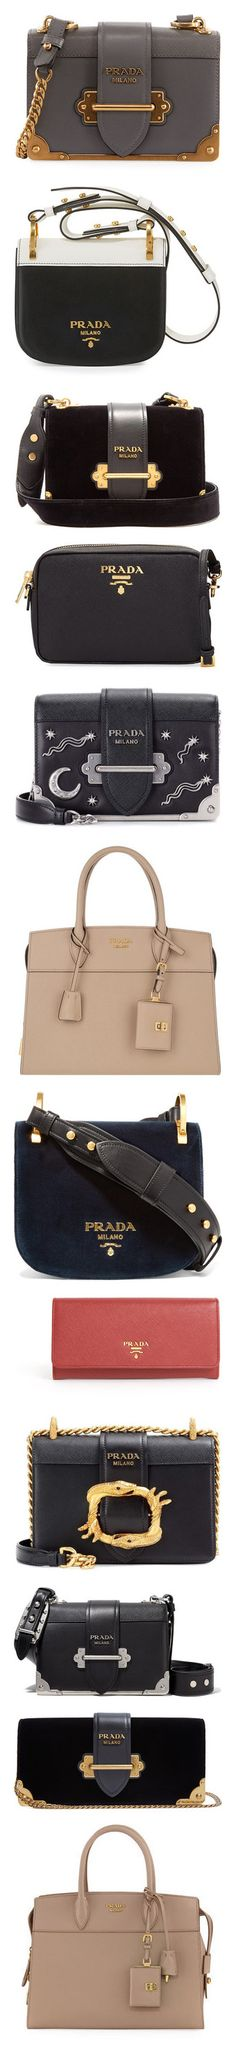 """Prada👜"" by petitaprenent ❤ liked on Polyvore featuring bags, handbags, shoulder bags, black, leather purses, prada shoulder bag, flap crossbody, leather crossbody purse, leather crossbody and prada"